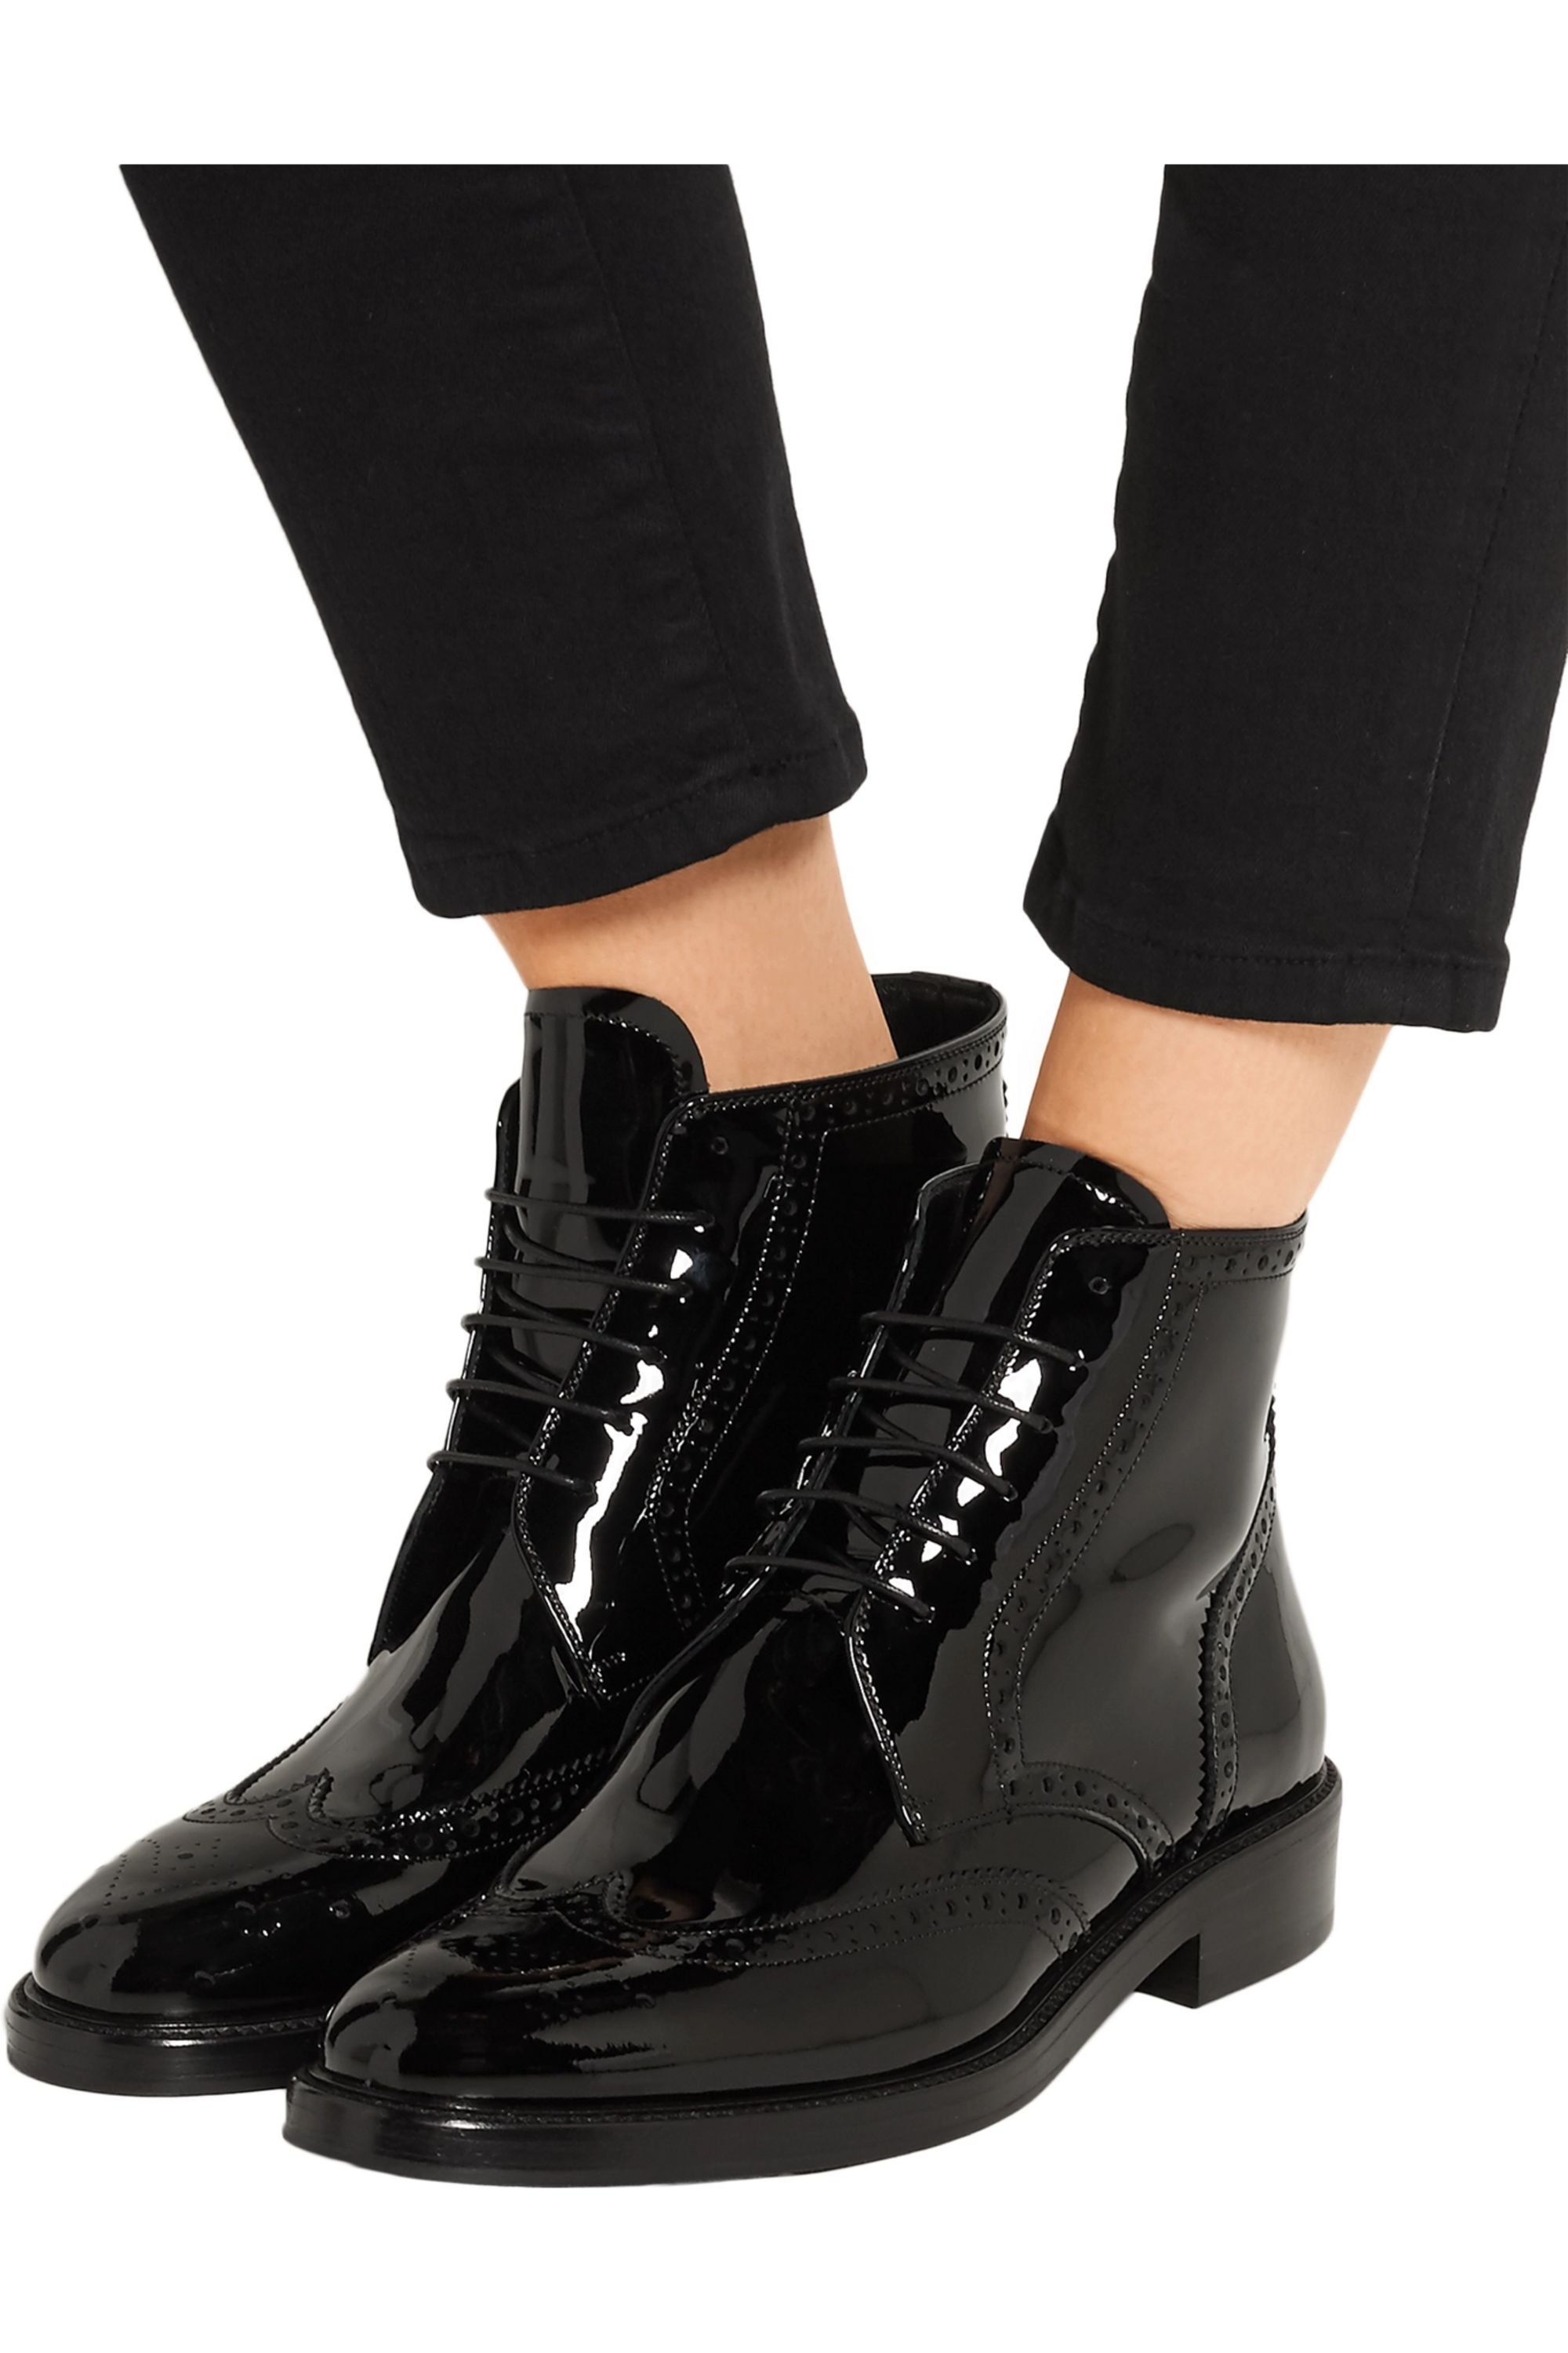 Black Patent-leather ankle boots